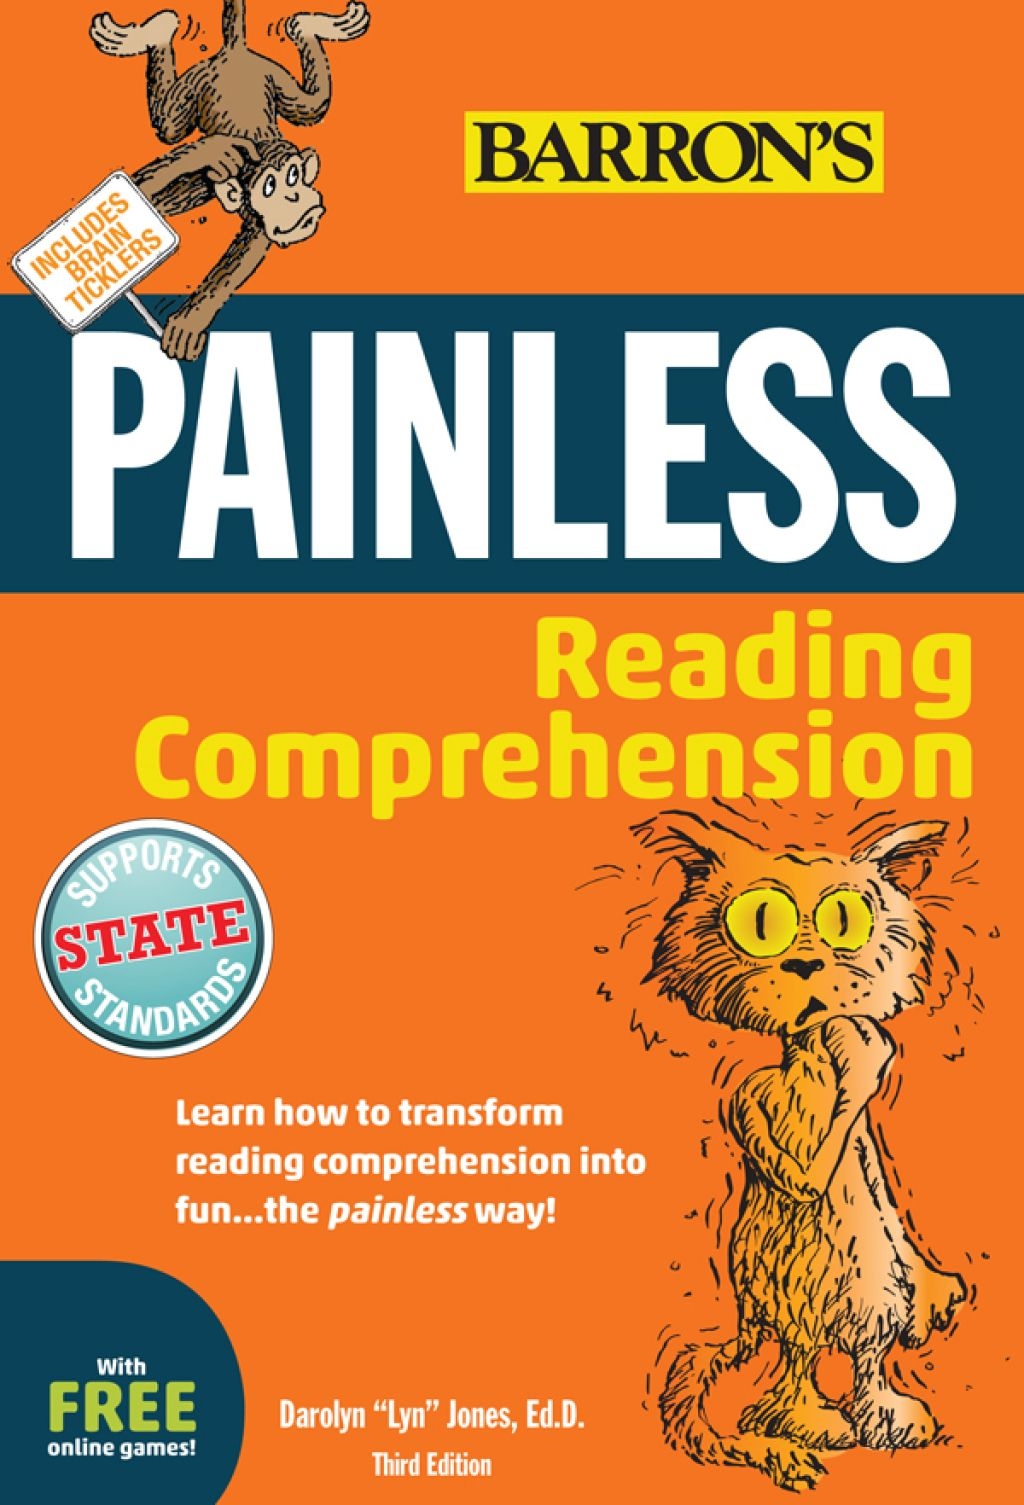 Painless Reading Comprehension Ebook In